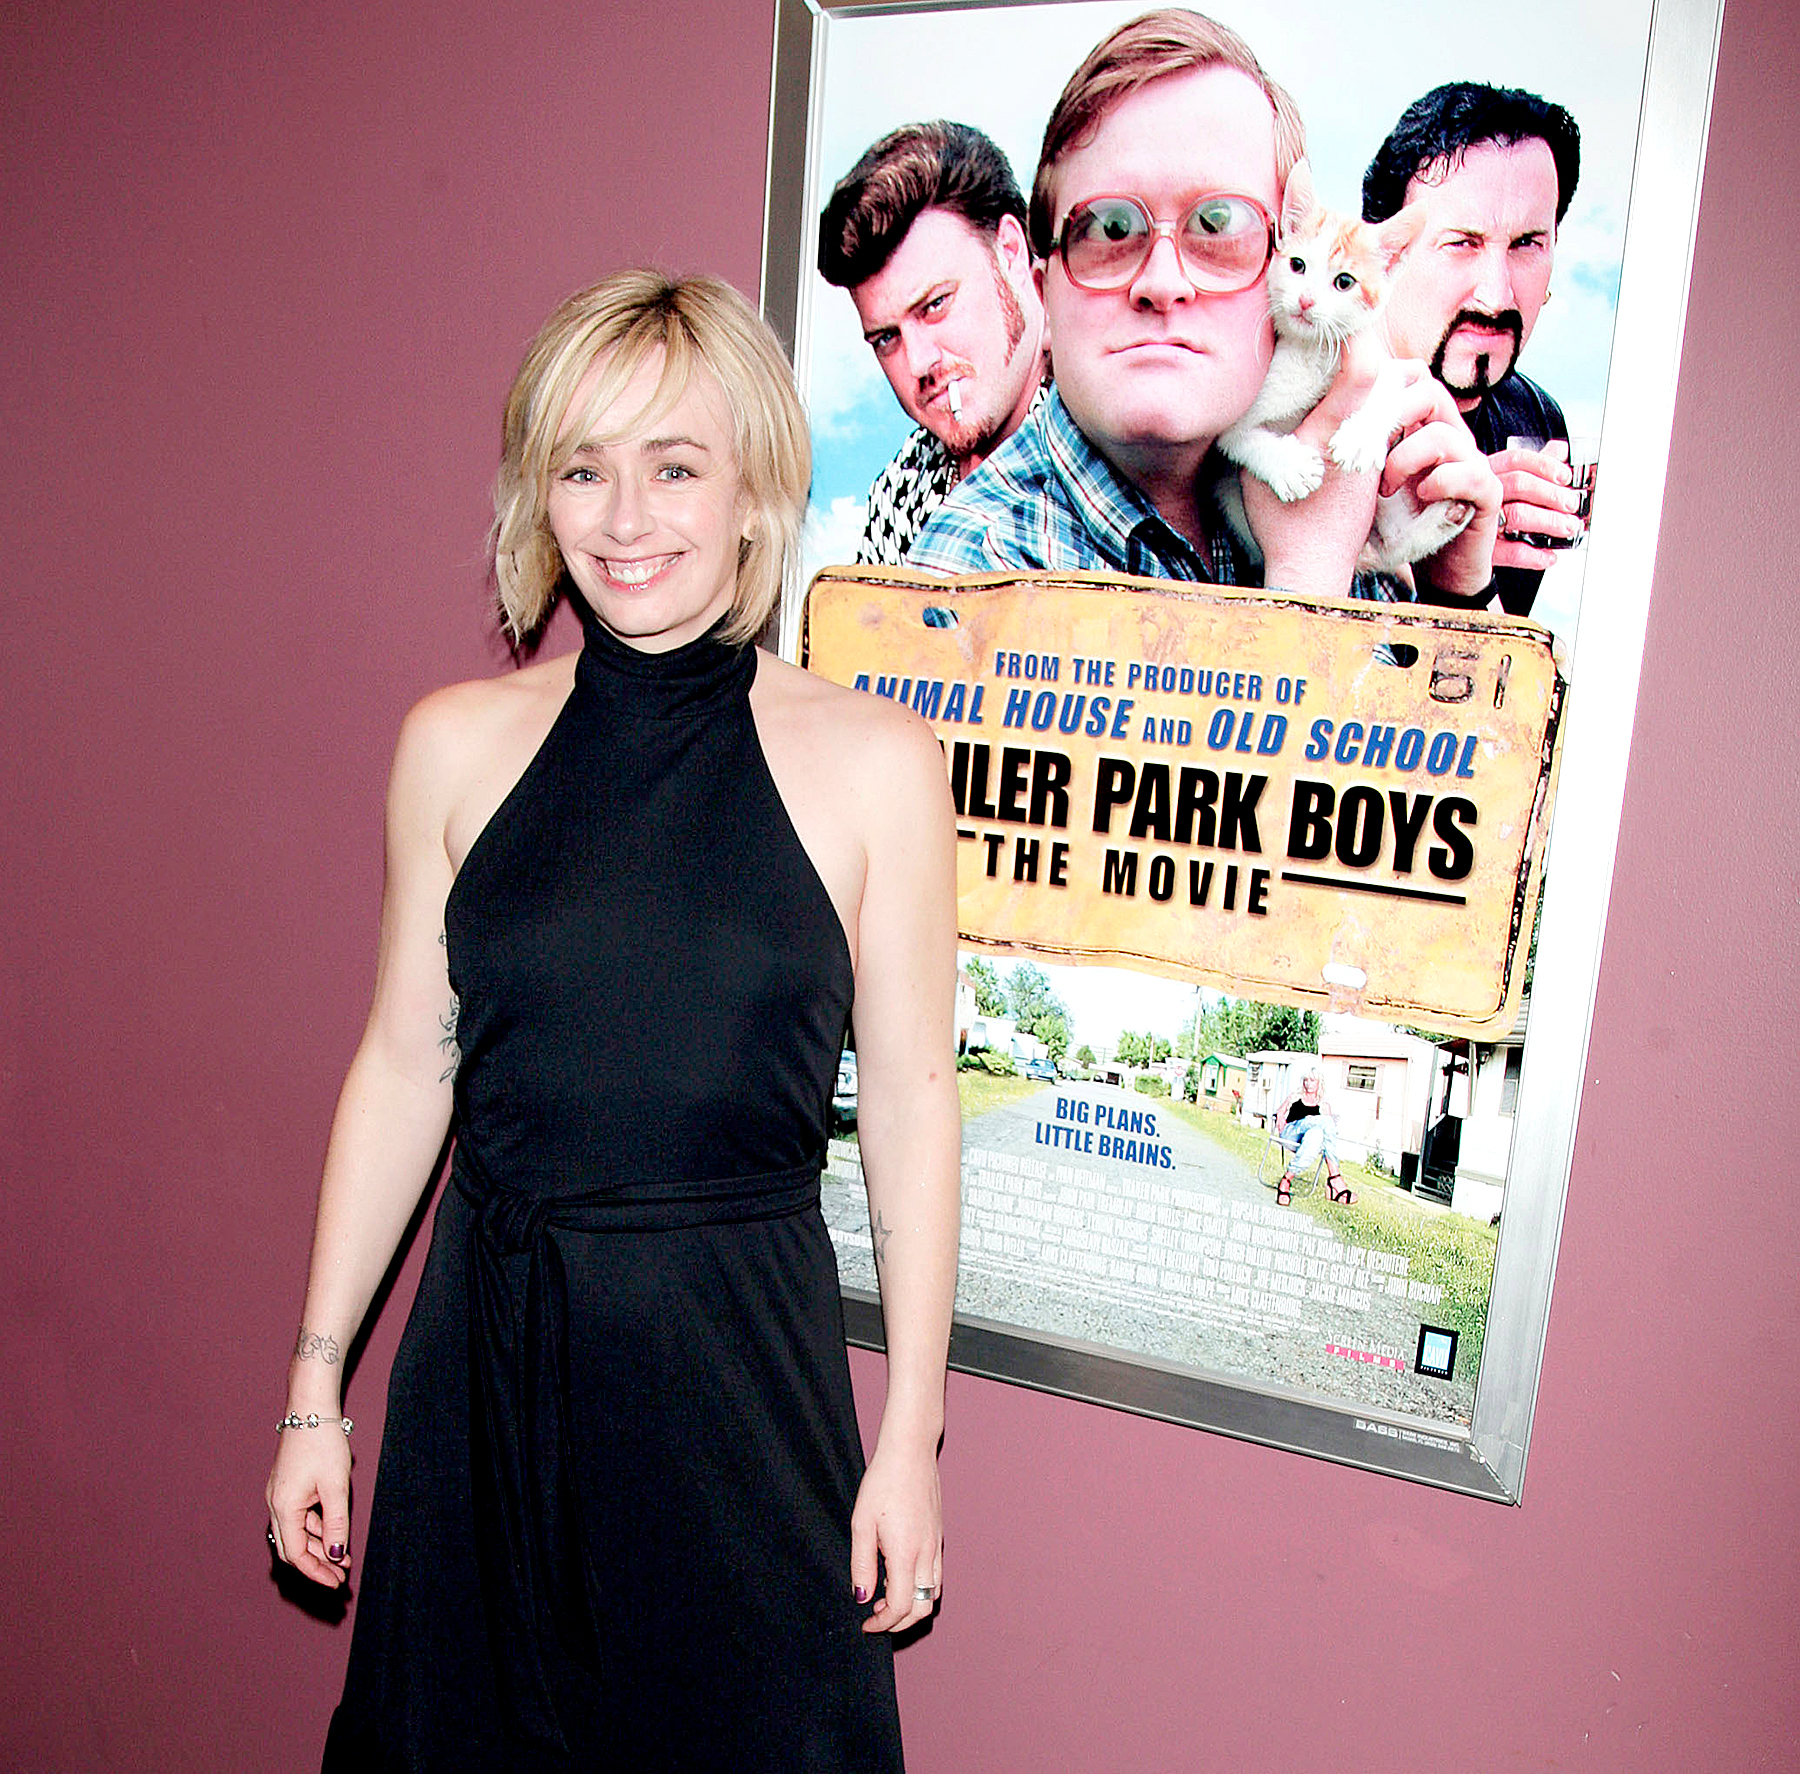 Lucy decoutere sexy